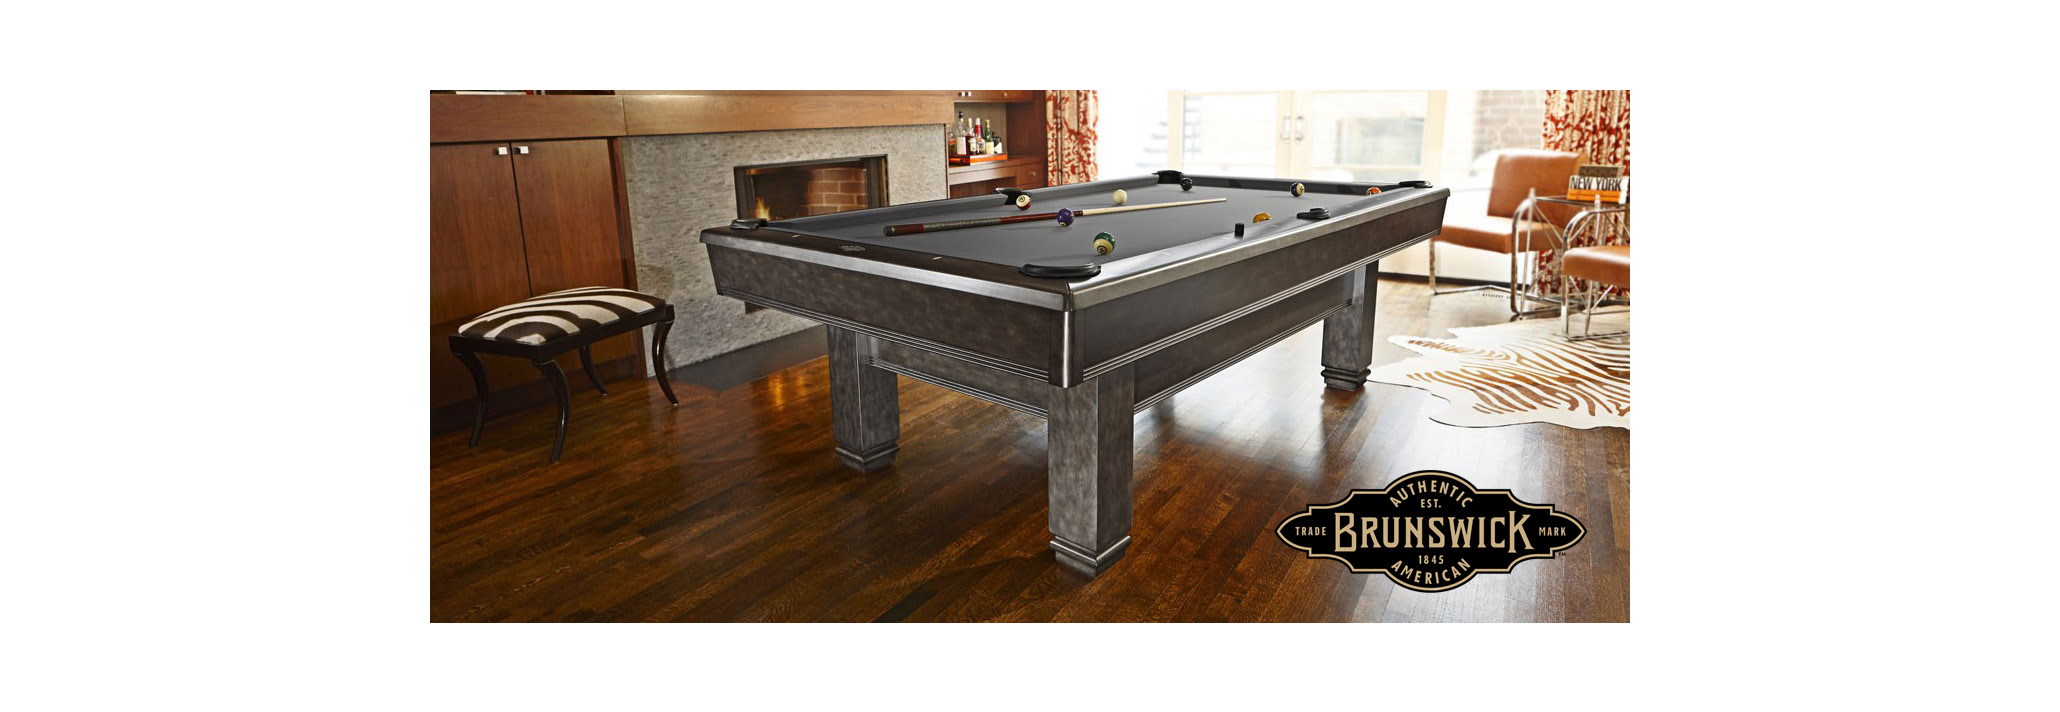 The Pool Table Store - Jacksonville pool table movers